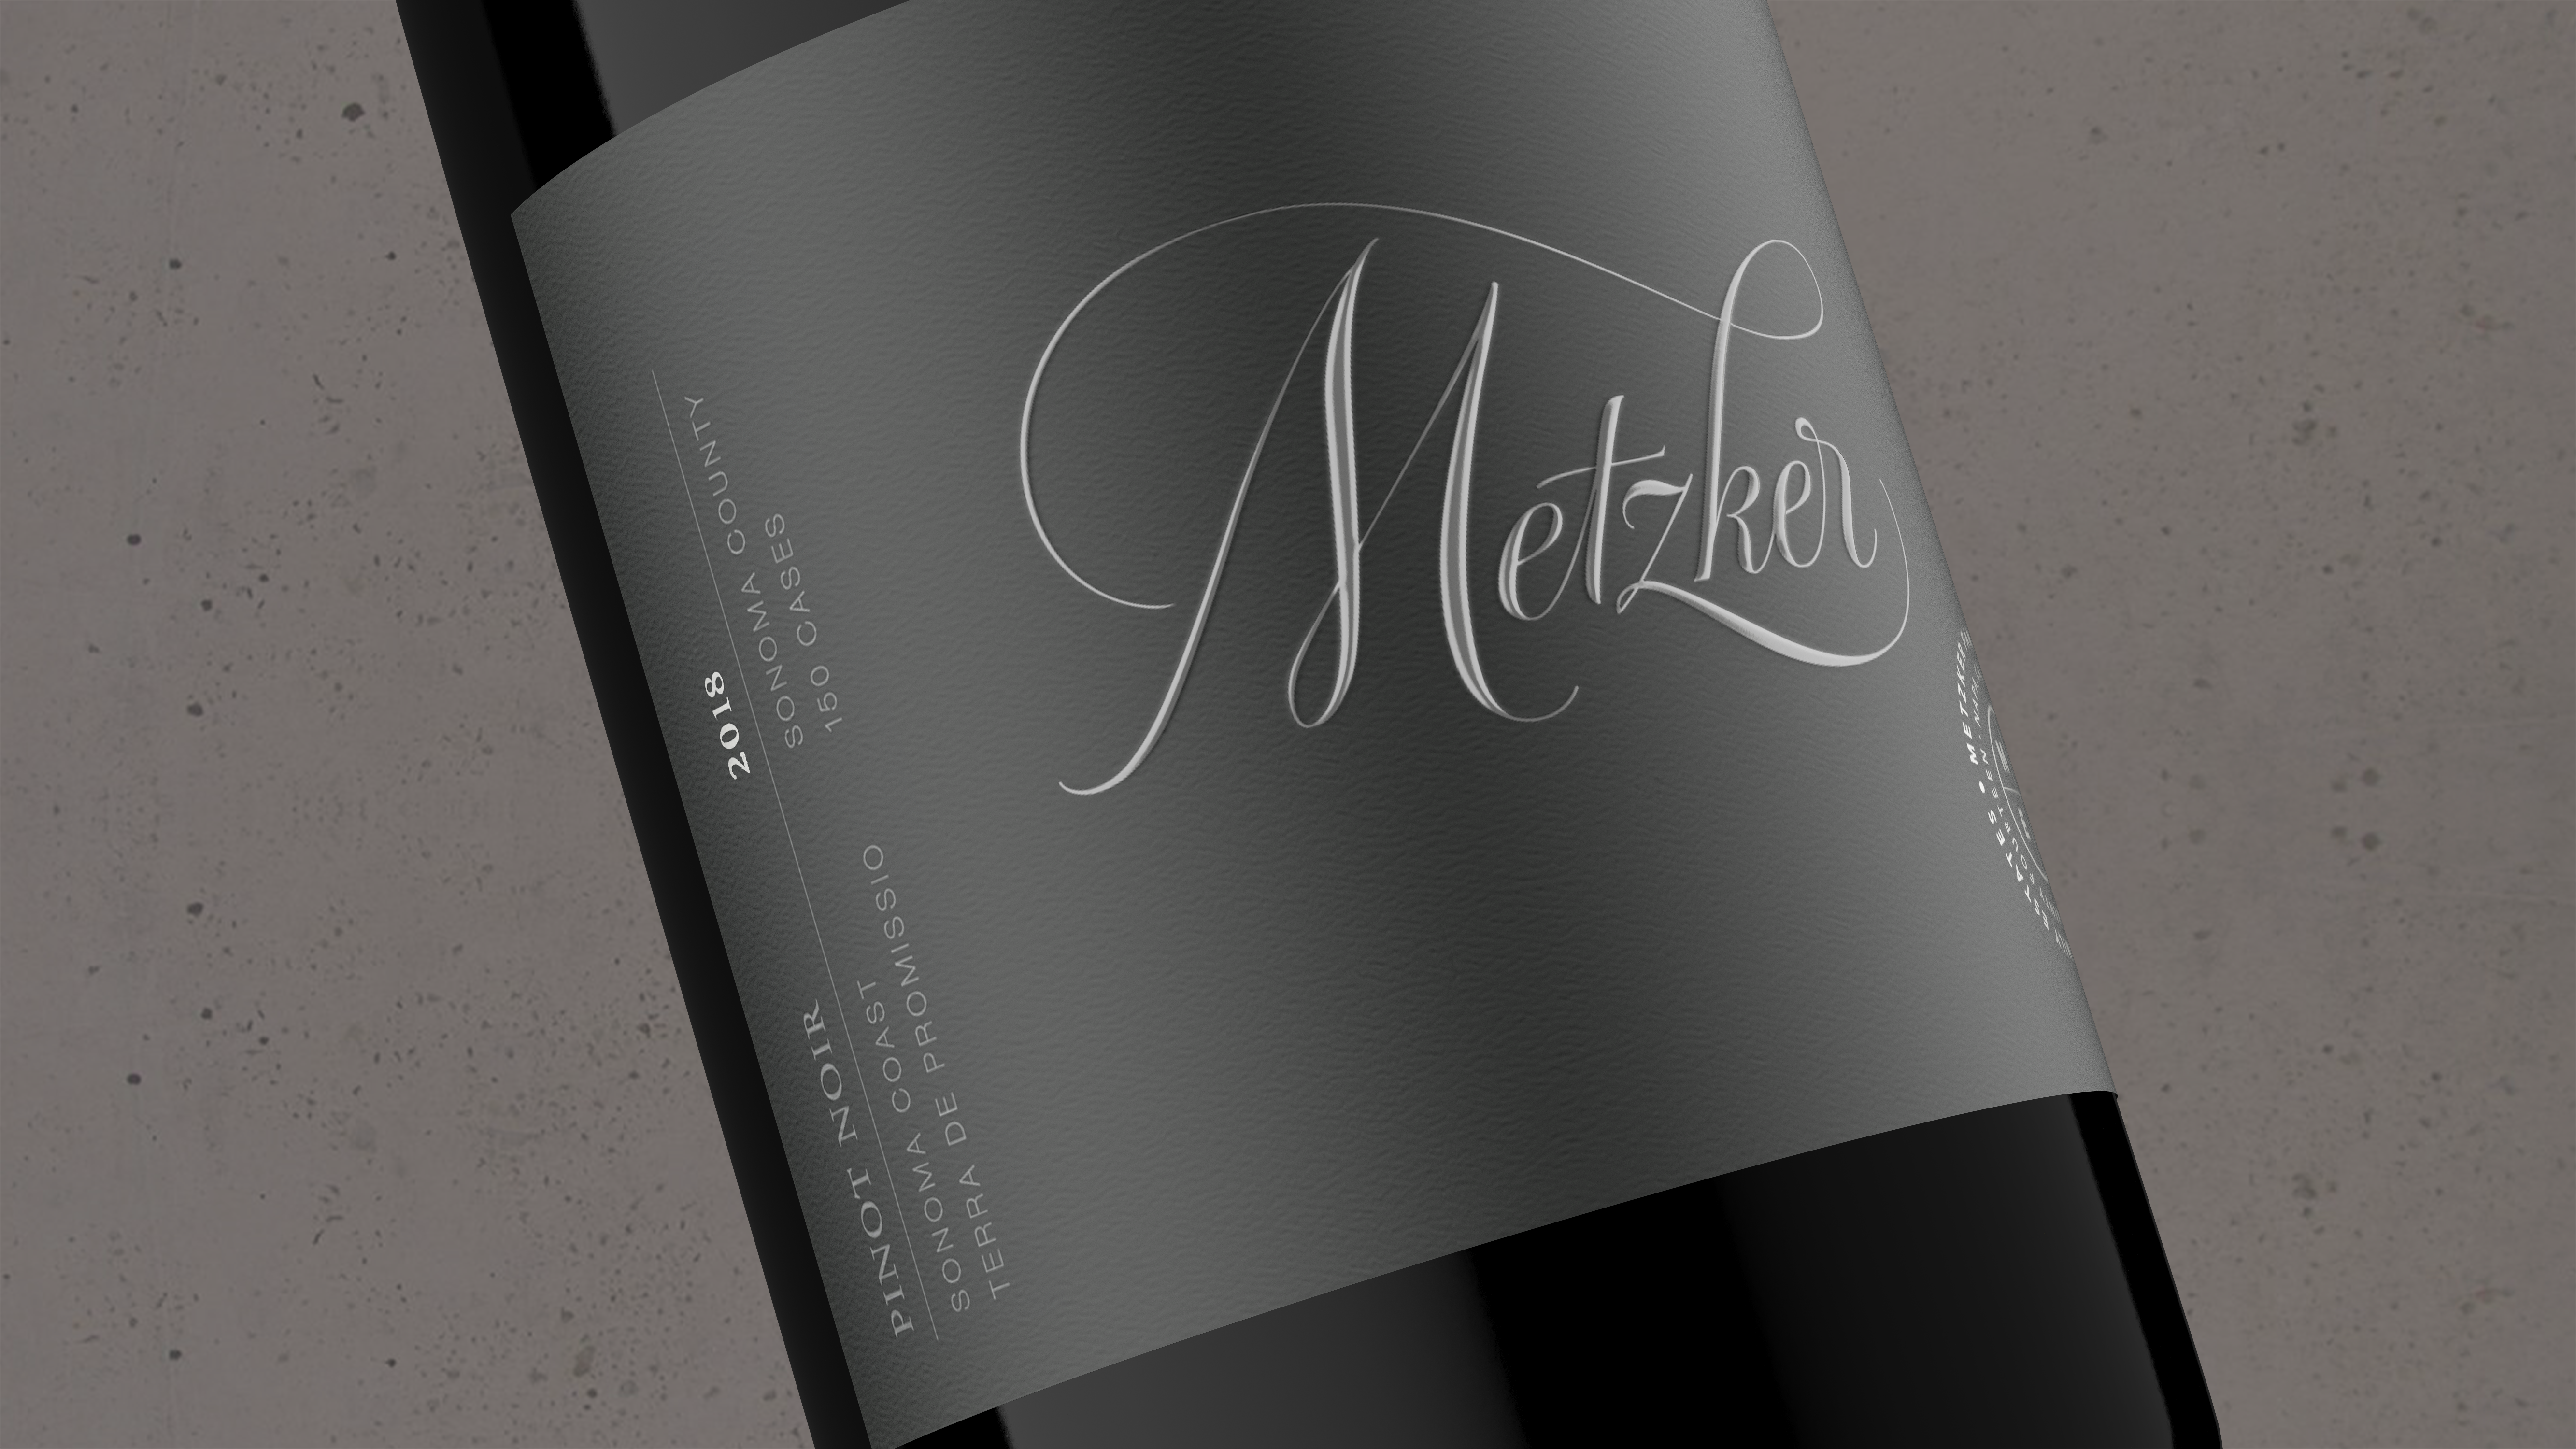 2018 Metzker Family Estates Pinot Noir Terra de Promissio - Metzker Family Estates Wines